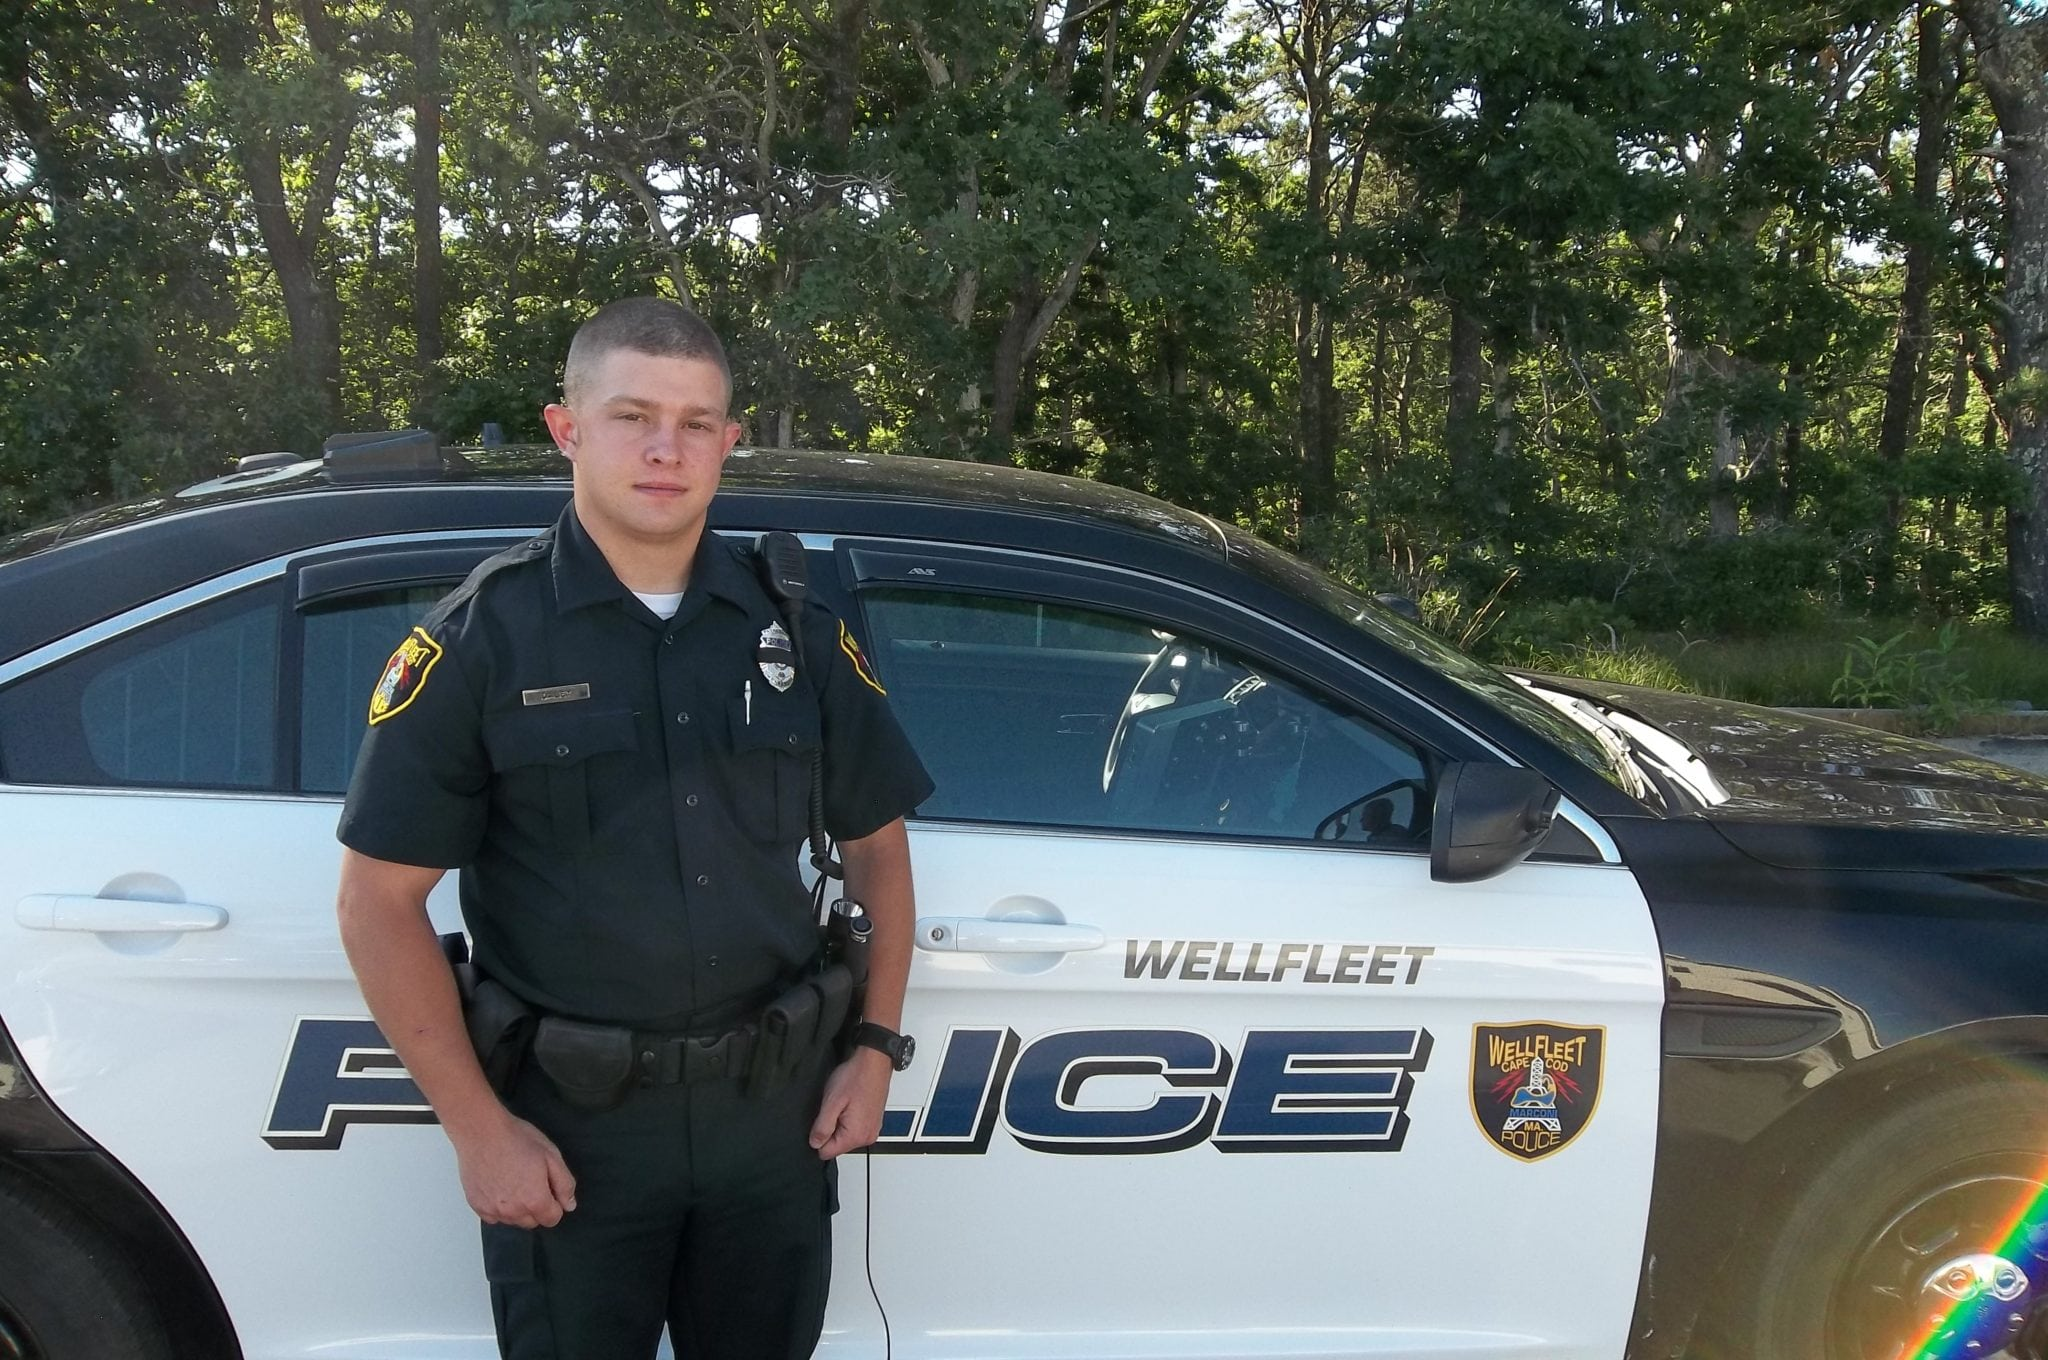 Meet the Department - Wellfleet Police Department